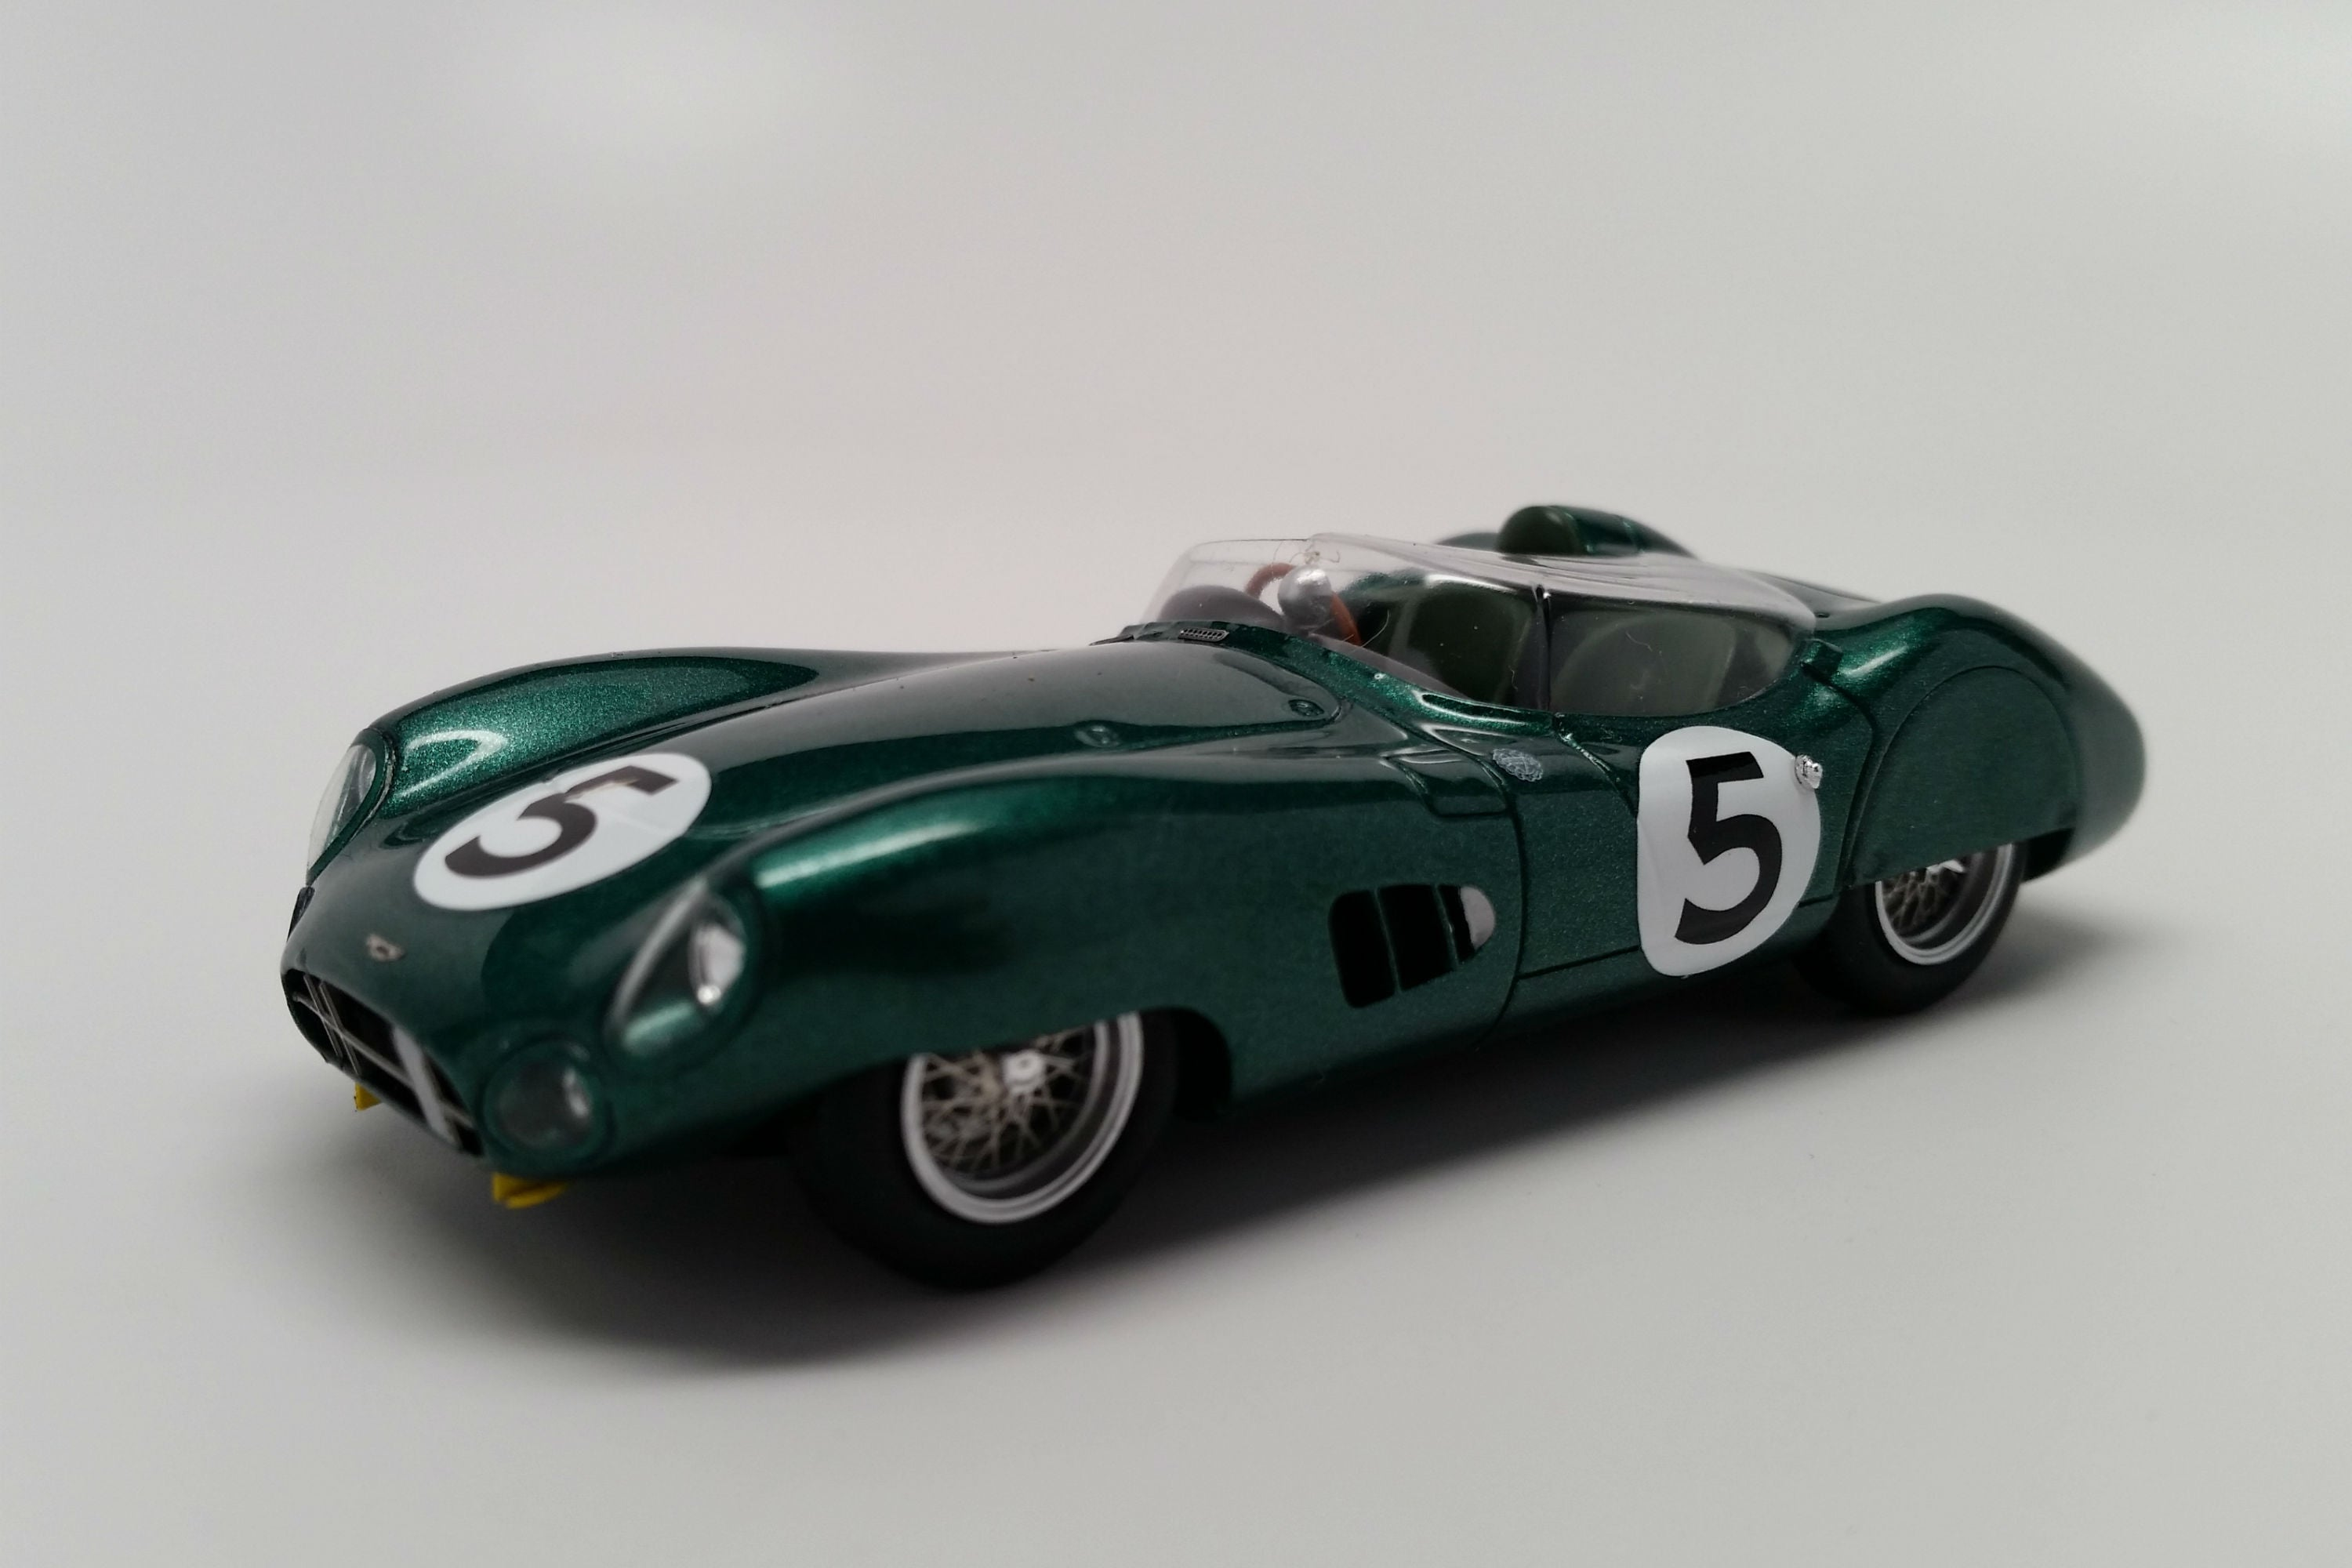 Aston Martin DBR1 (1959 Le Mans Winner) | 1:43 Scale Model Car by Spark | Front Quarter